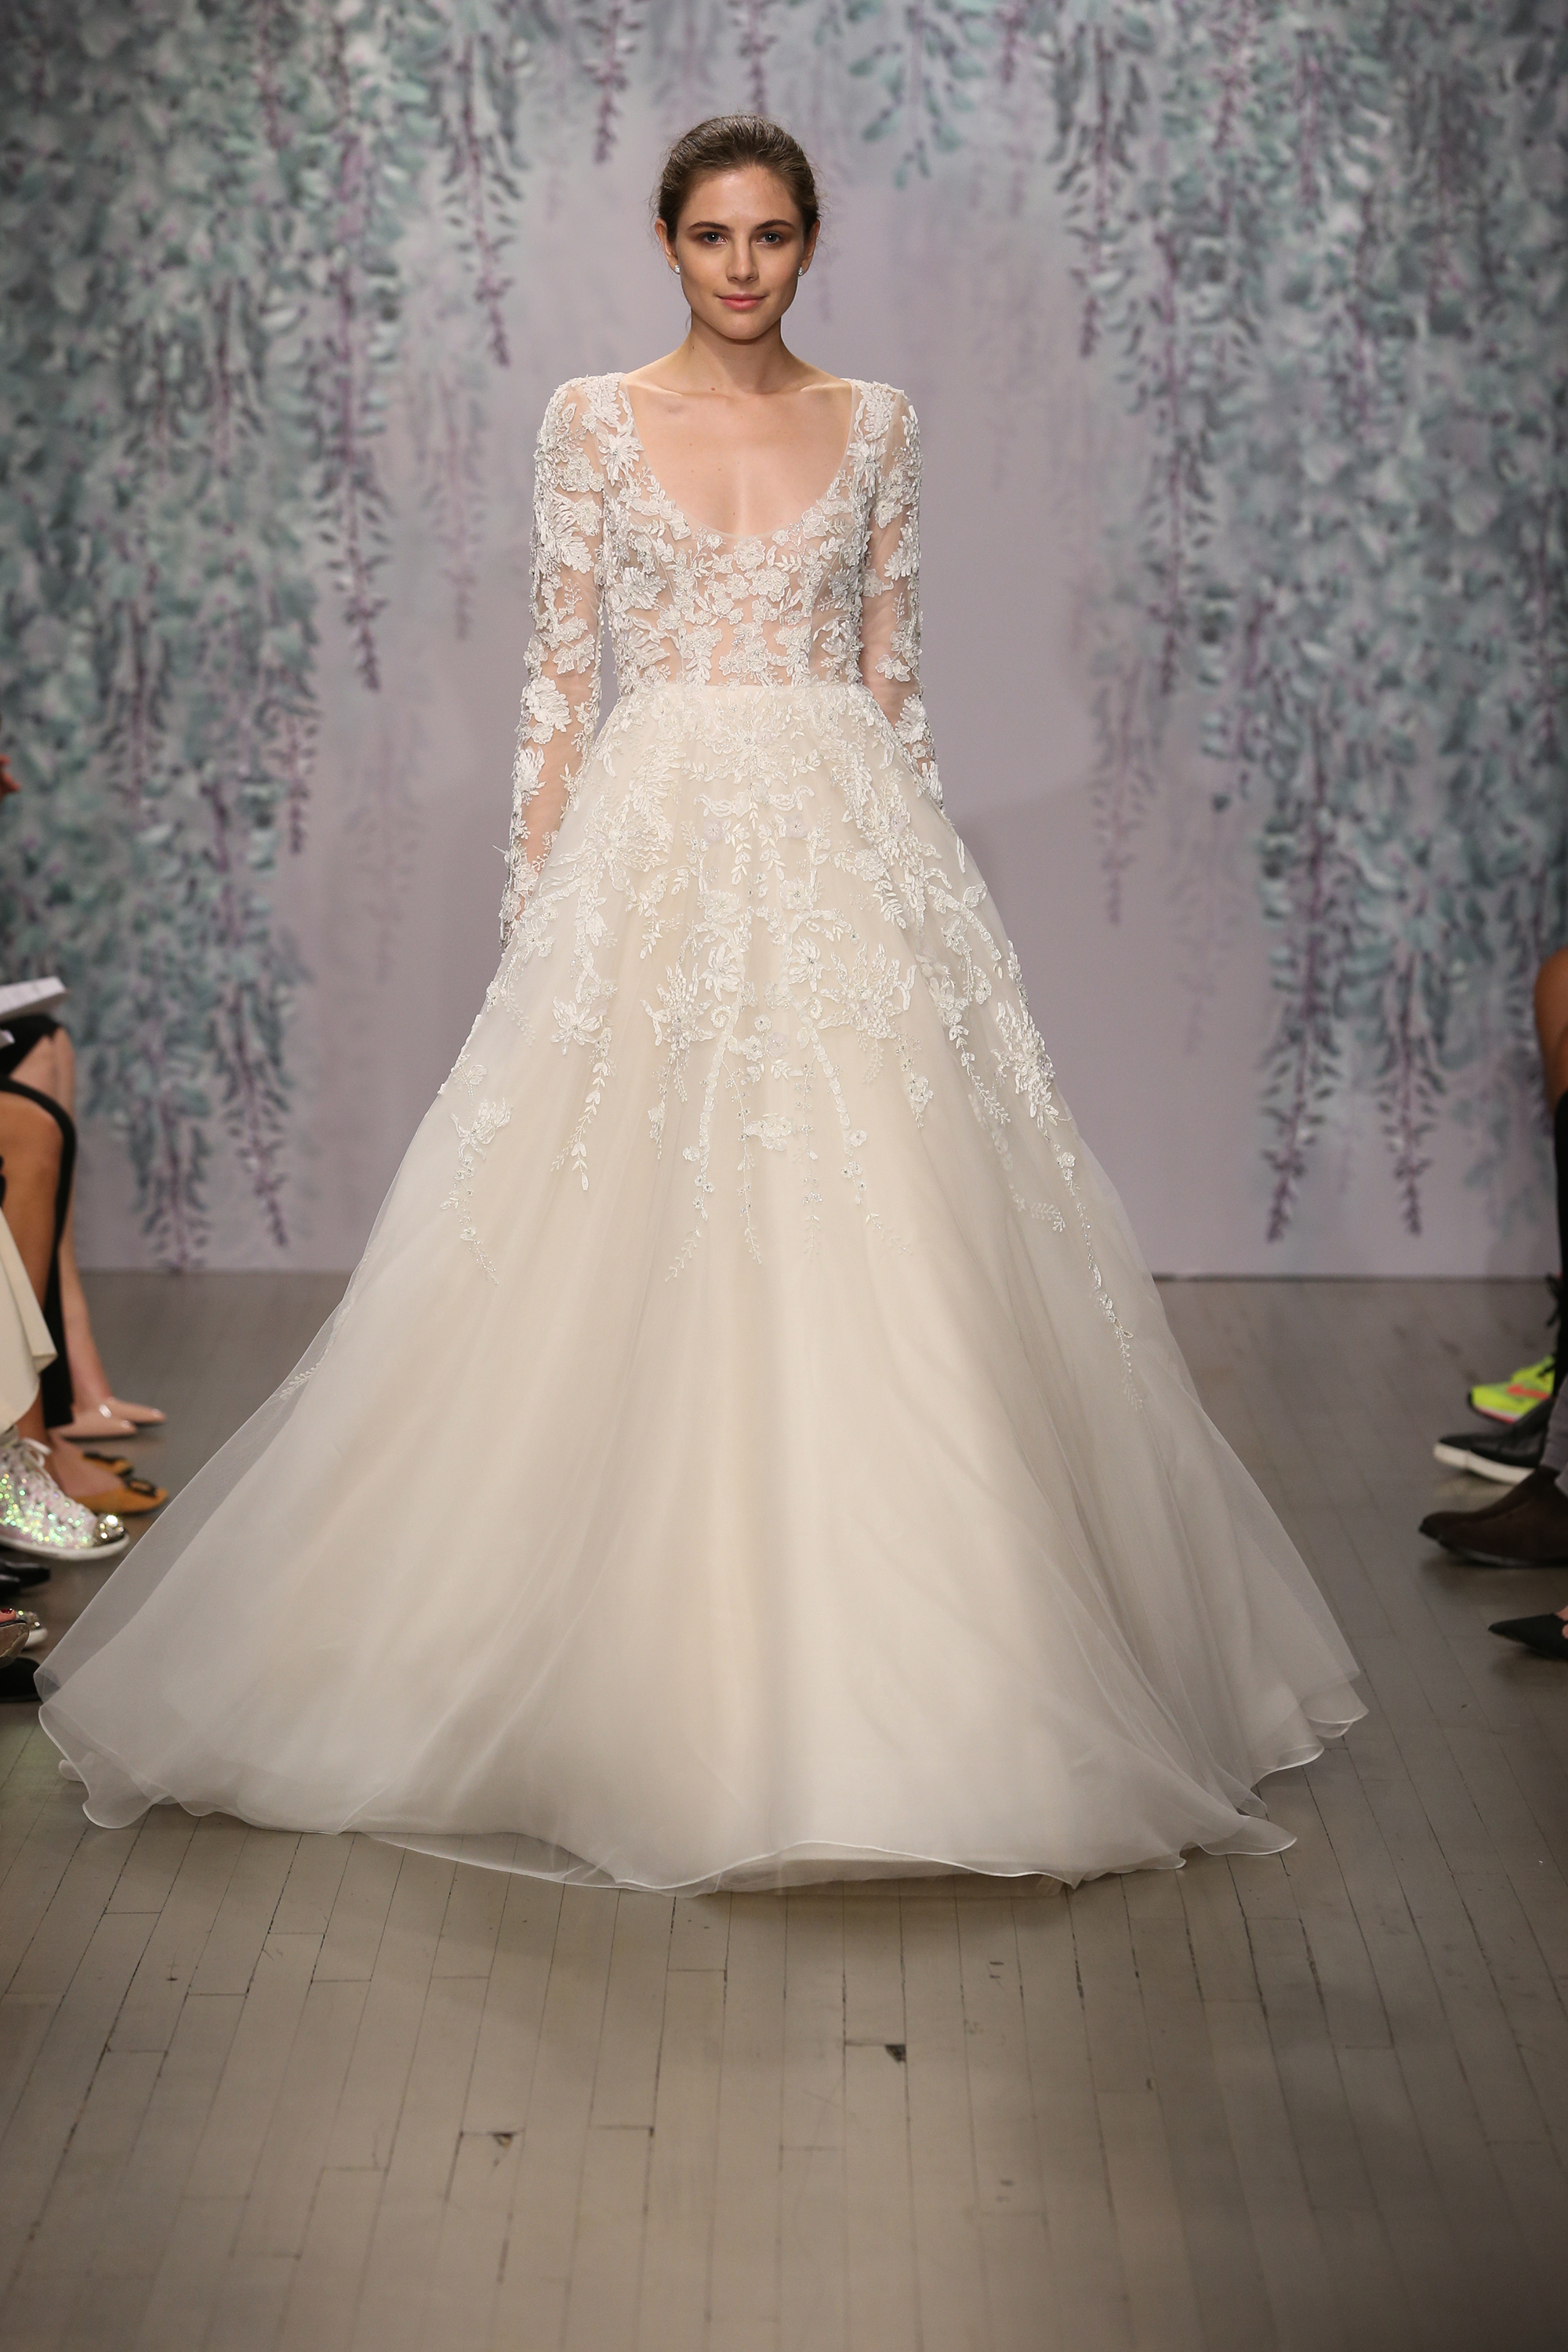 Bridal Week Fashion Fall 2016 - Fall 2016 Designer Wedding Dresses